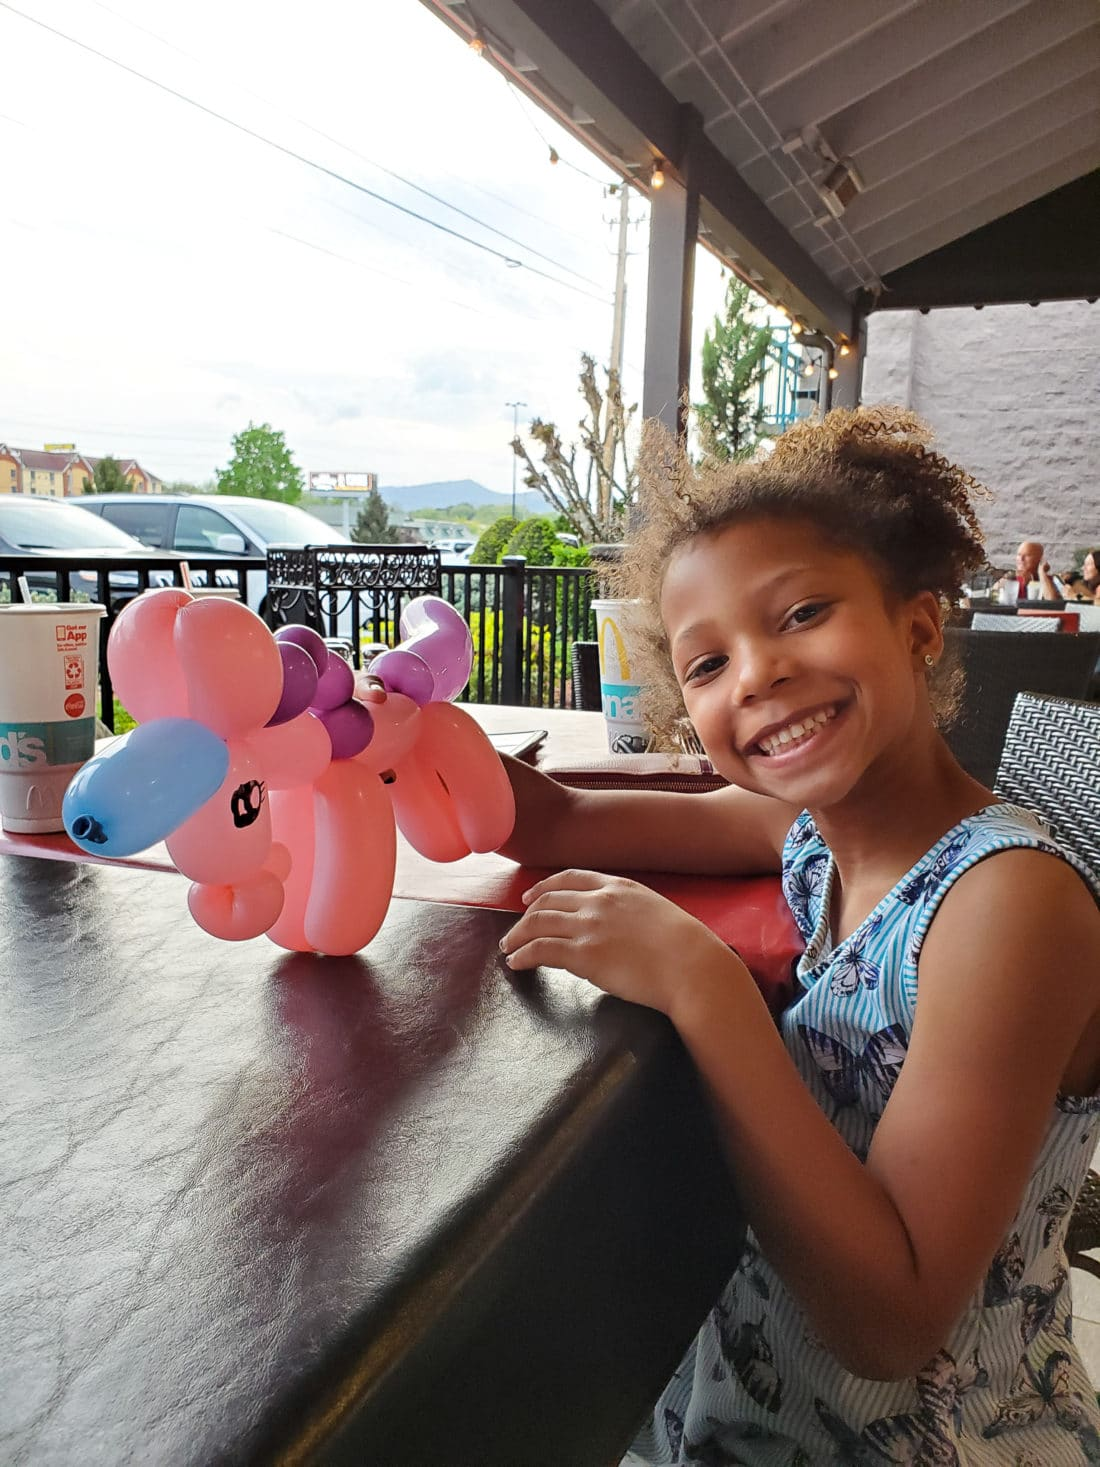 Big Daddy's Pizzeria Balloon Animals. This is not your average pizza pie!At the heart of Big Daddy's is a 550 degree, wood-fired flame inside of a one-of-a-kind brick oven. Read all about why this freshly made pizza is my families go to pizza joint in Pigeon Forge, TN.